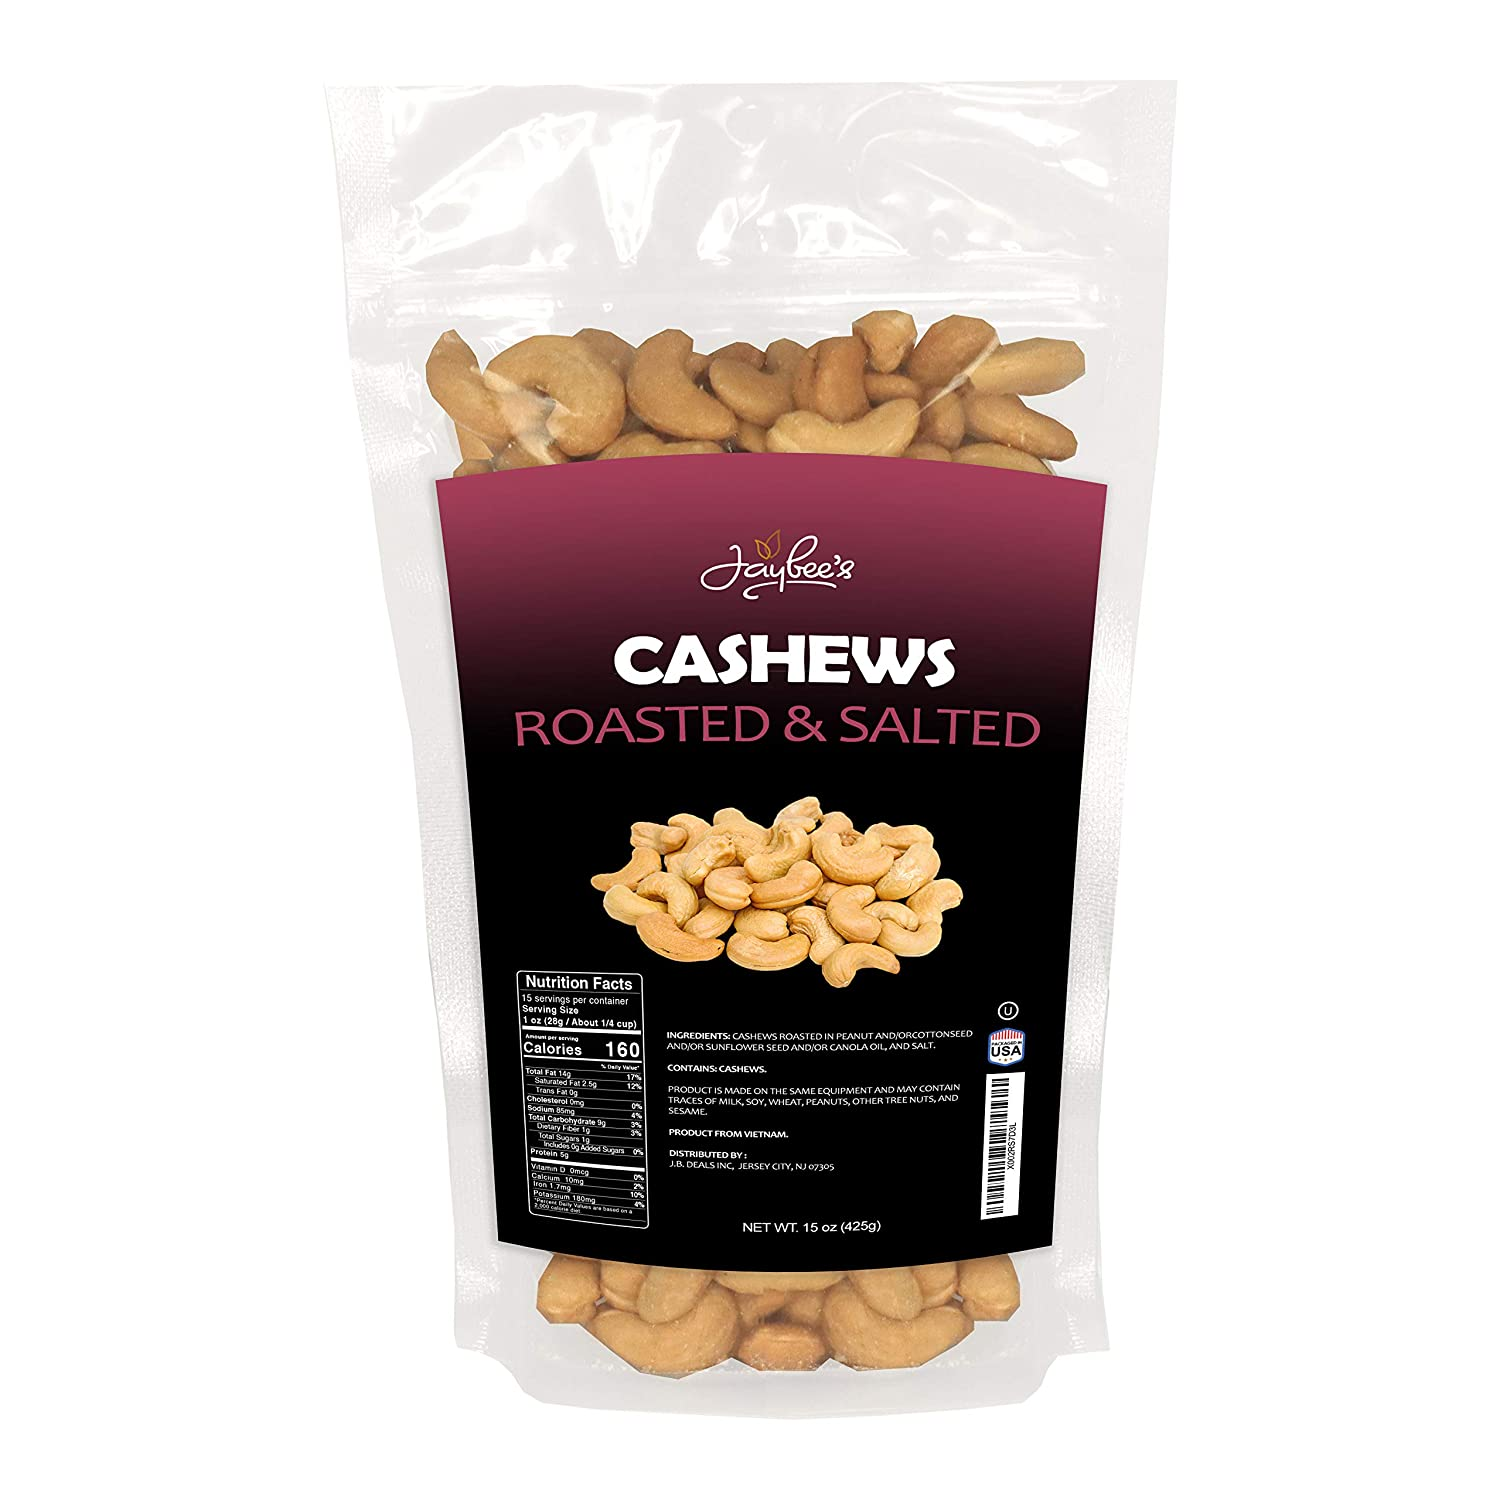 Jaybee's Whole Cashews Roasted & Salted 15 oz - Daily Healthy Snack, Rich in Nutrients, Vitamins, Protein, Vegan, Keto Friendly - Kosher Certified